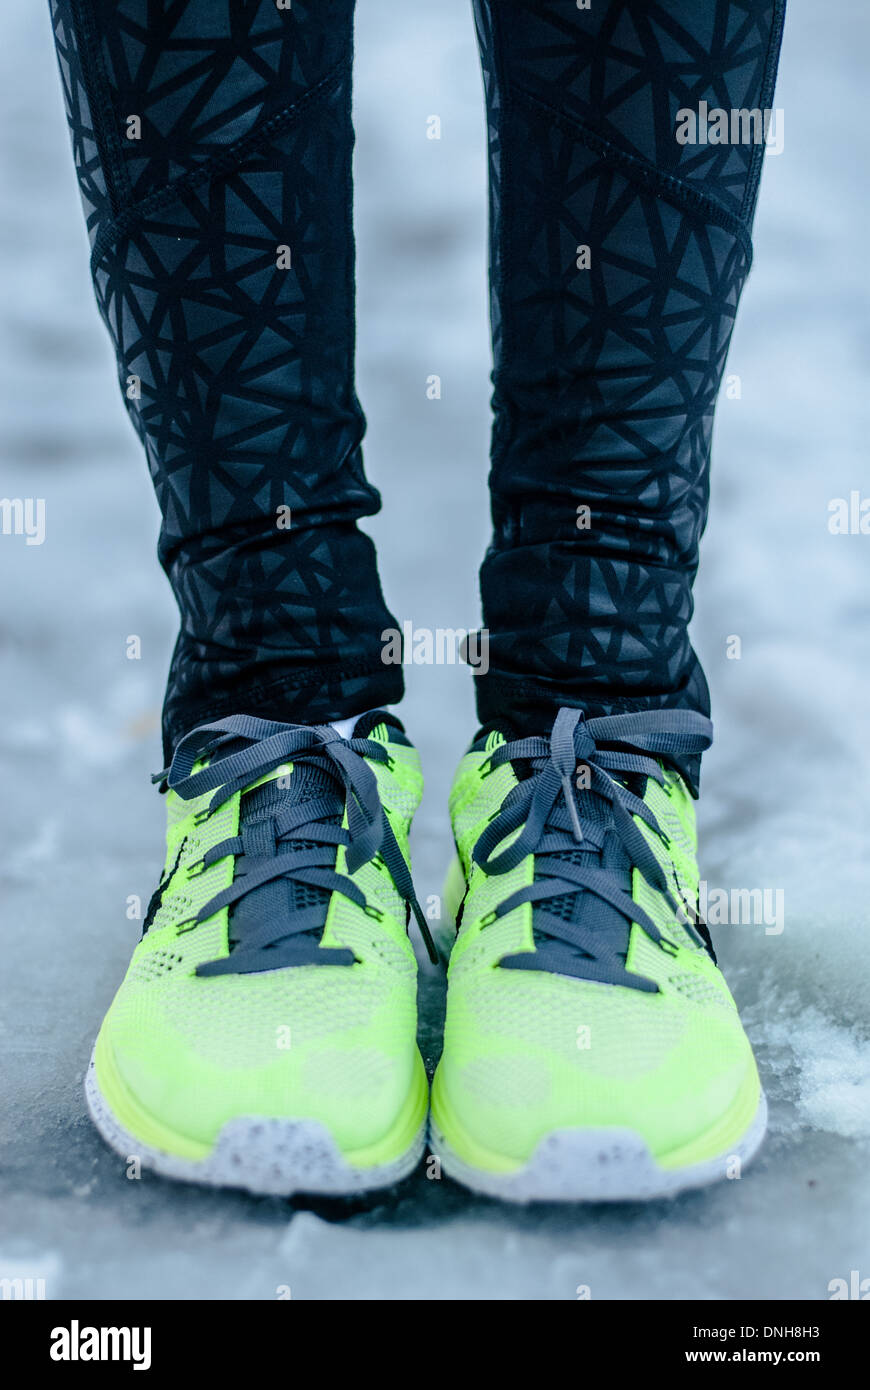 Closeup of a fit female runner's feet, in neon yellow running shoes, as she stands on an icy path on a cold winter day. - Stock Image